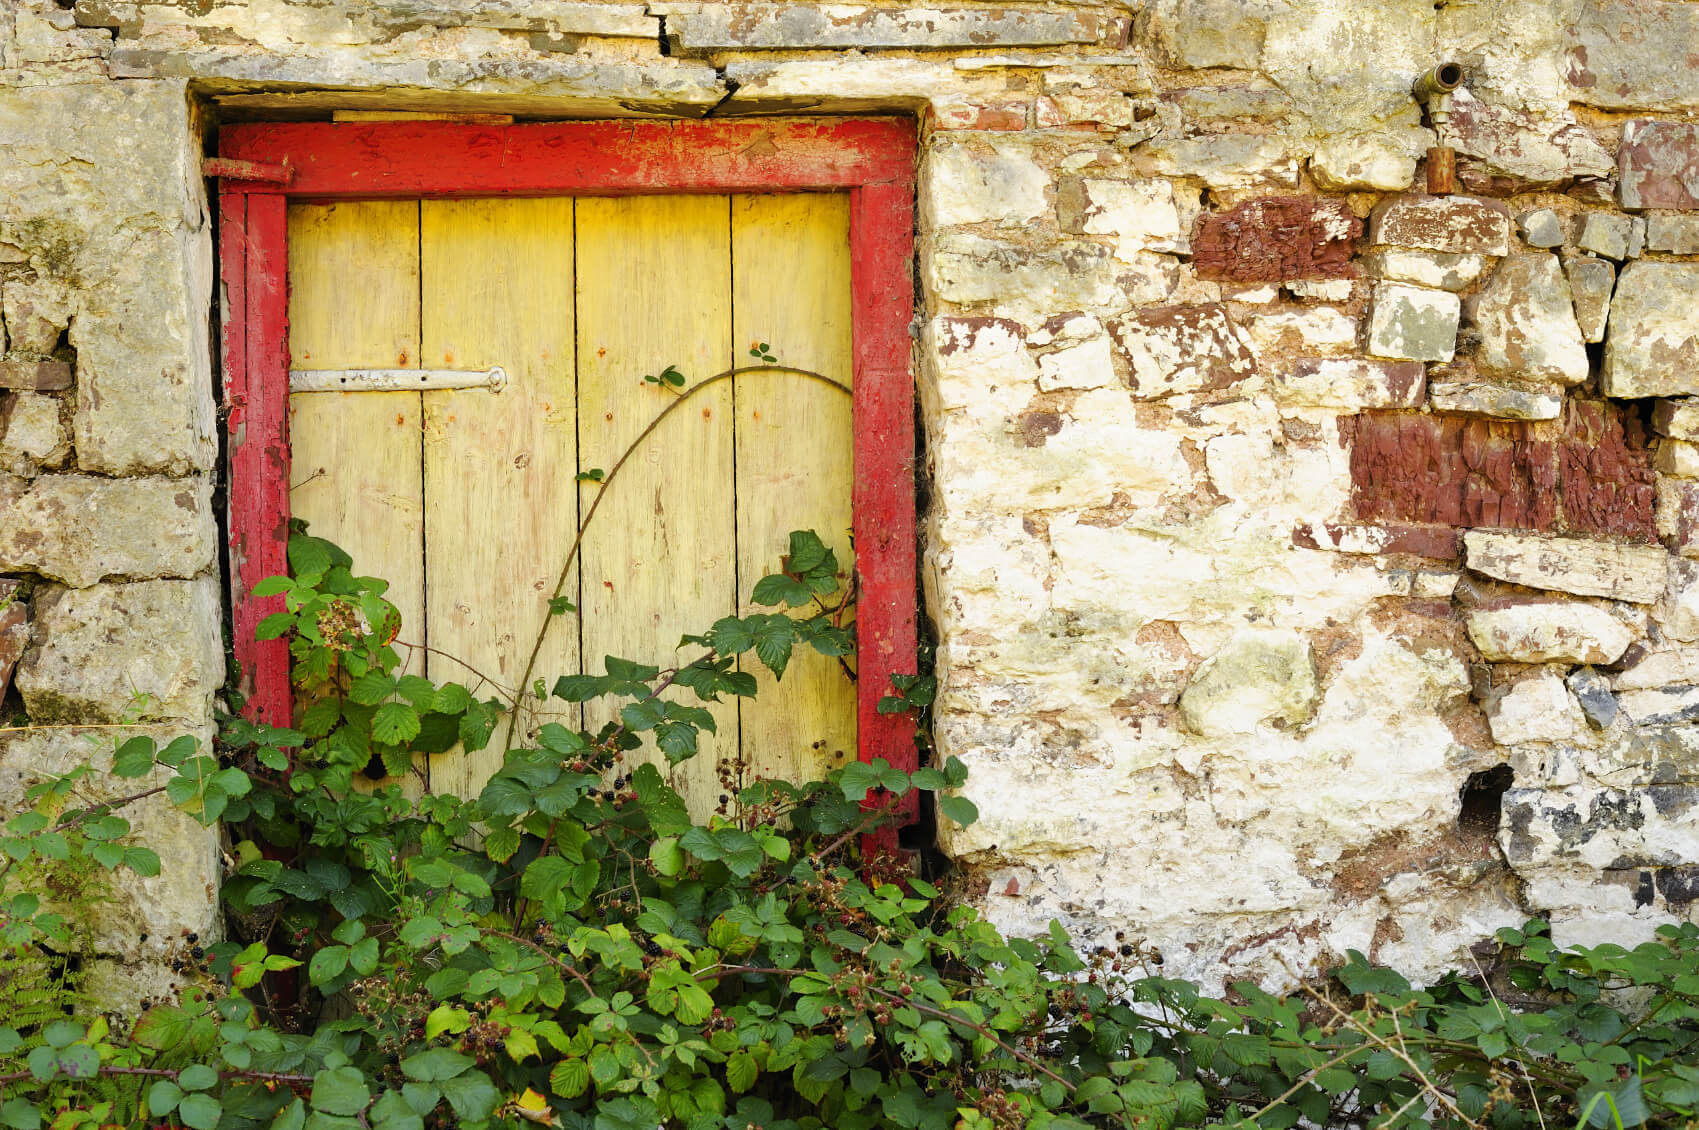 If you let berry bushes and vines grow wild against aged and rugged stonework you can have an amazing berry patch with a rustic and old fashioned feel.